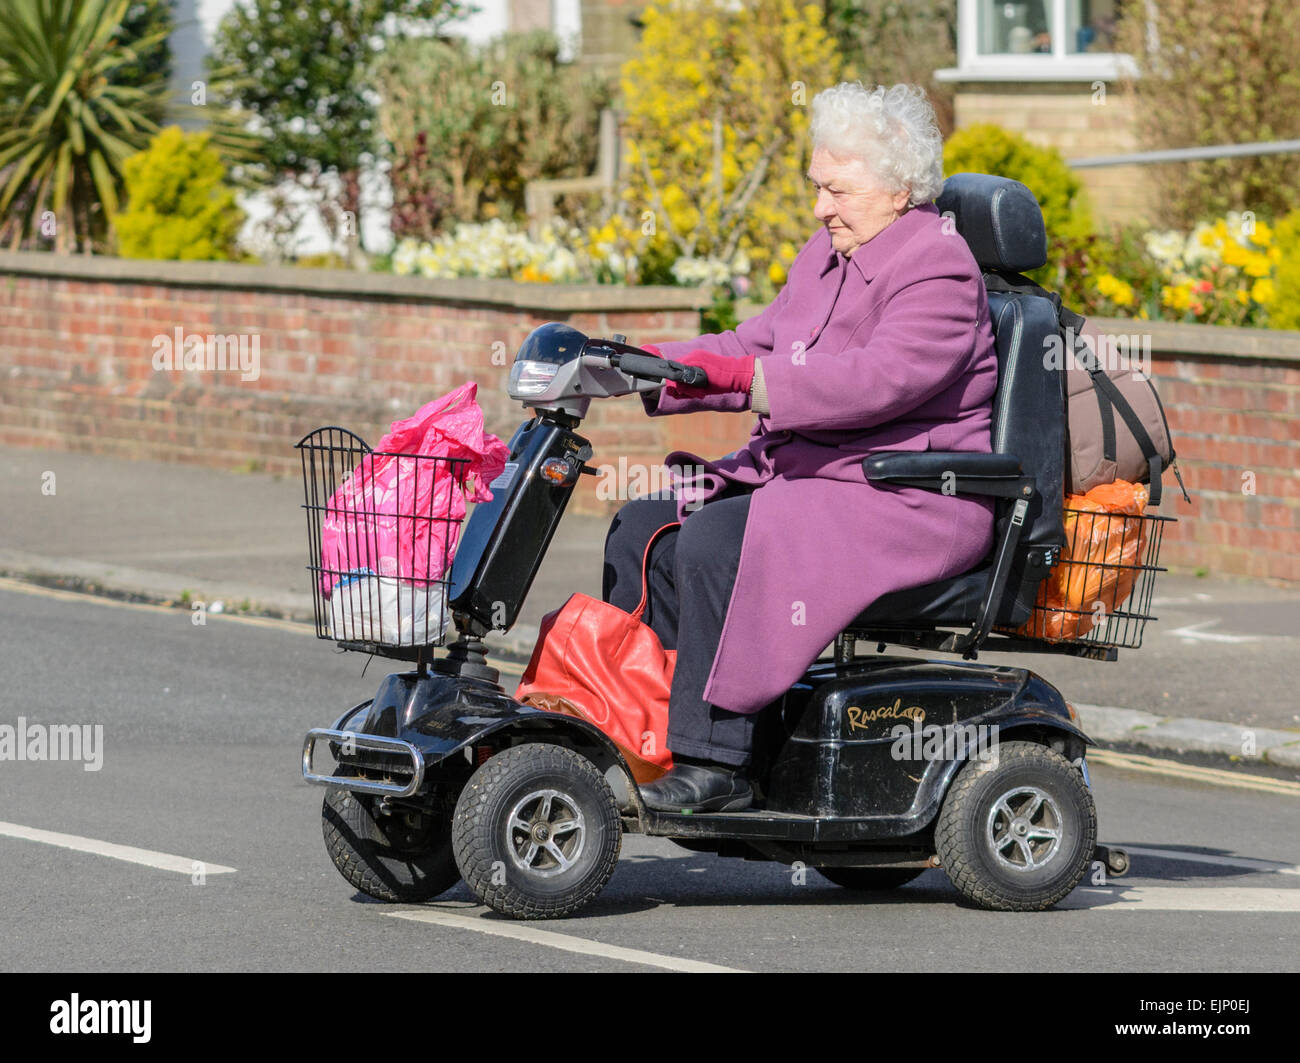 Mobility scooter. Elderly lady riding a mobility scooter across a road carrying shopping bags. - Stock Image